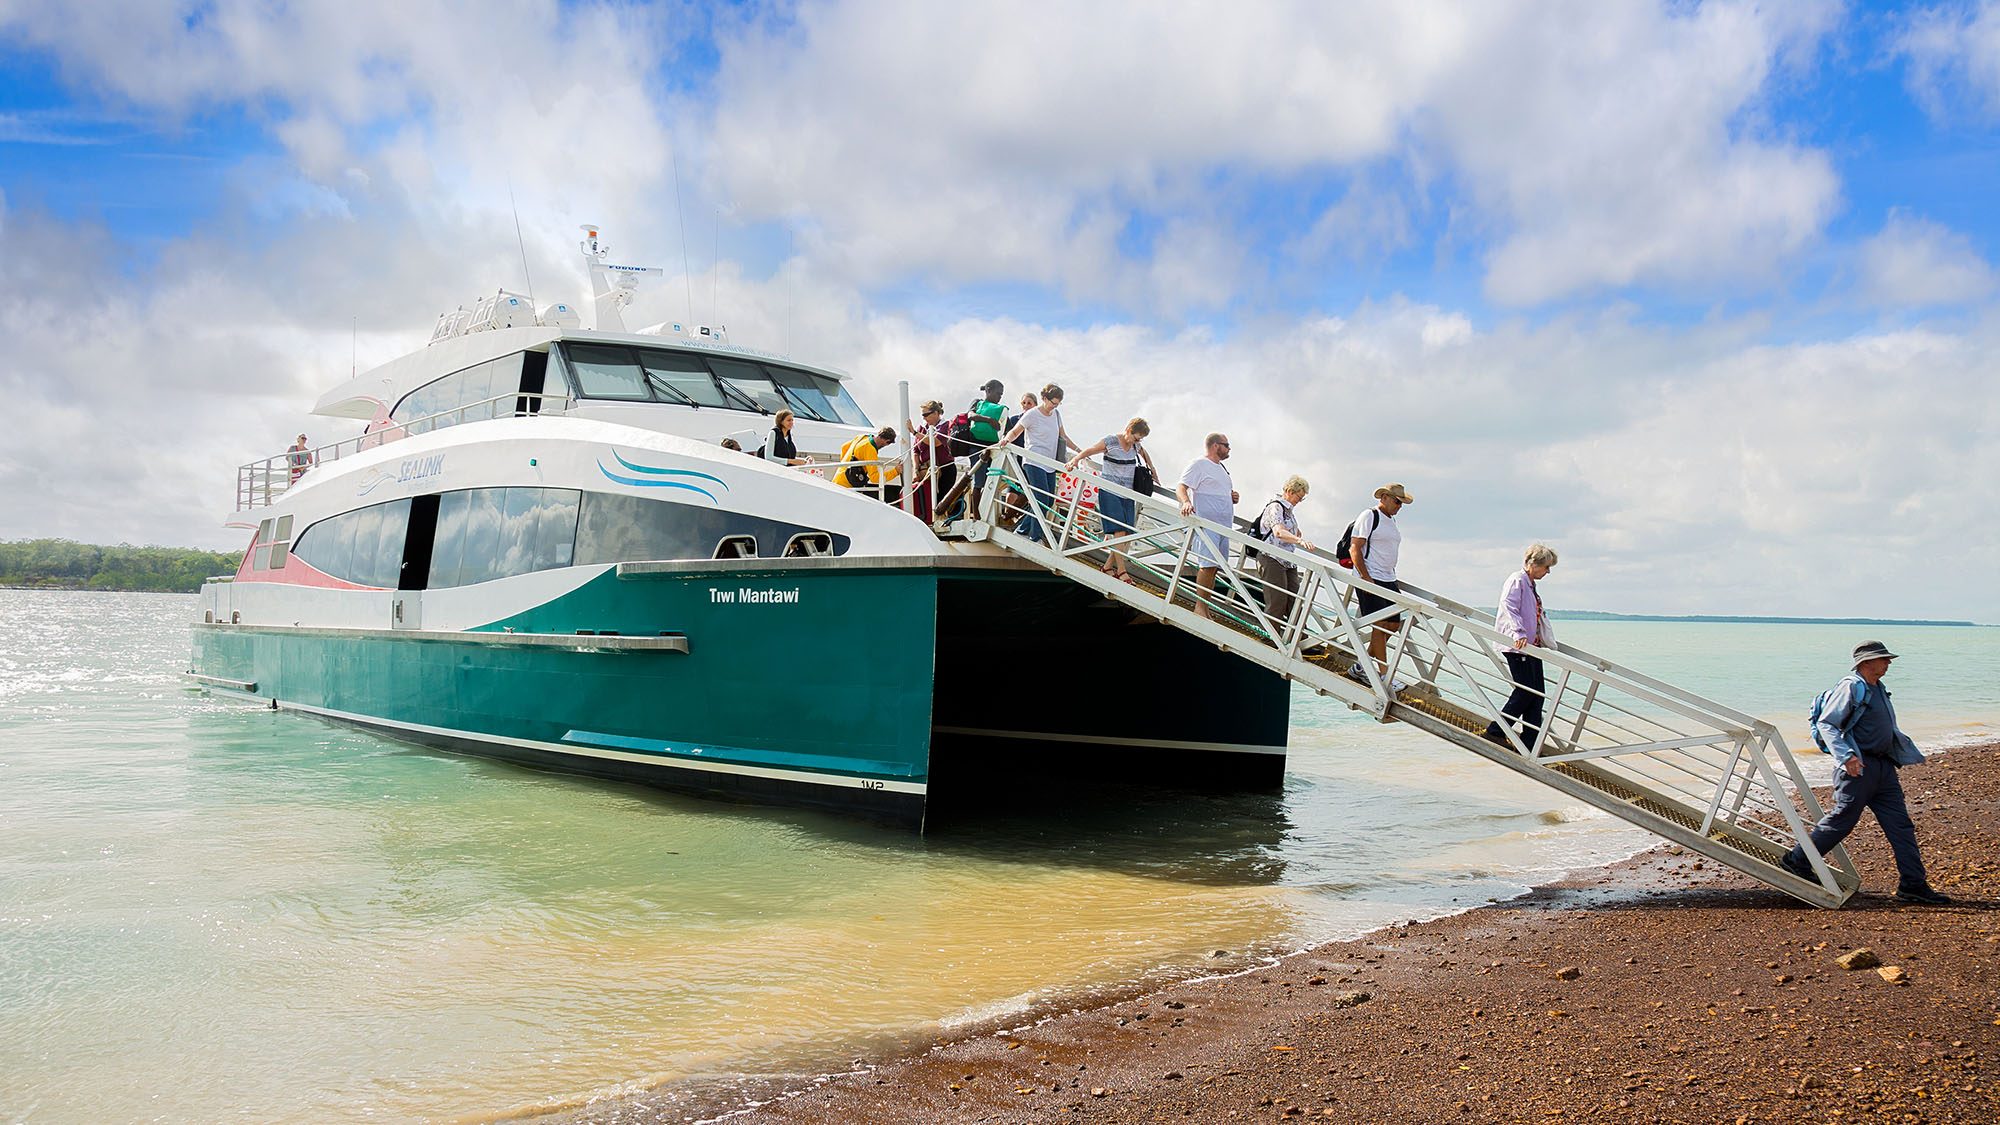 Tiwi Aboriginal Cultural Experience by ferry